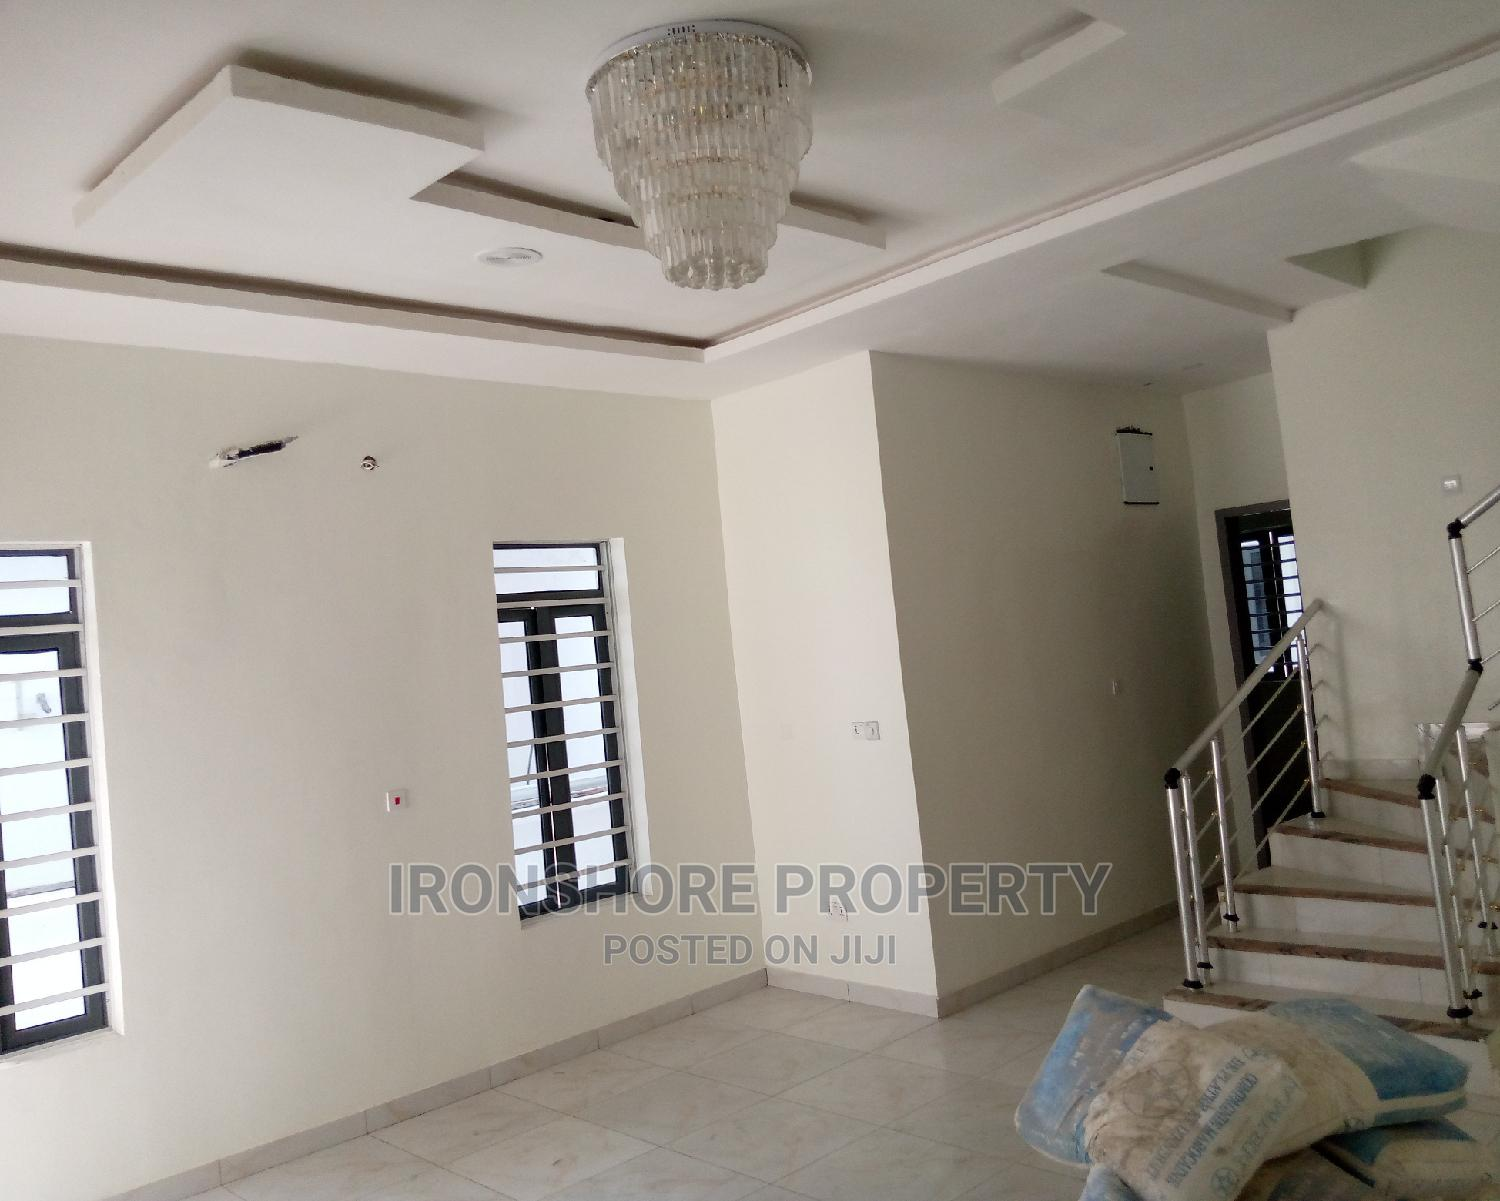 Brand New 4 Bedroom Semi-detached Duplex For Sale | Houses & Apartments For Sale for sale in Ikota, Lekki, Nigeria